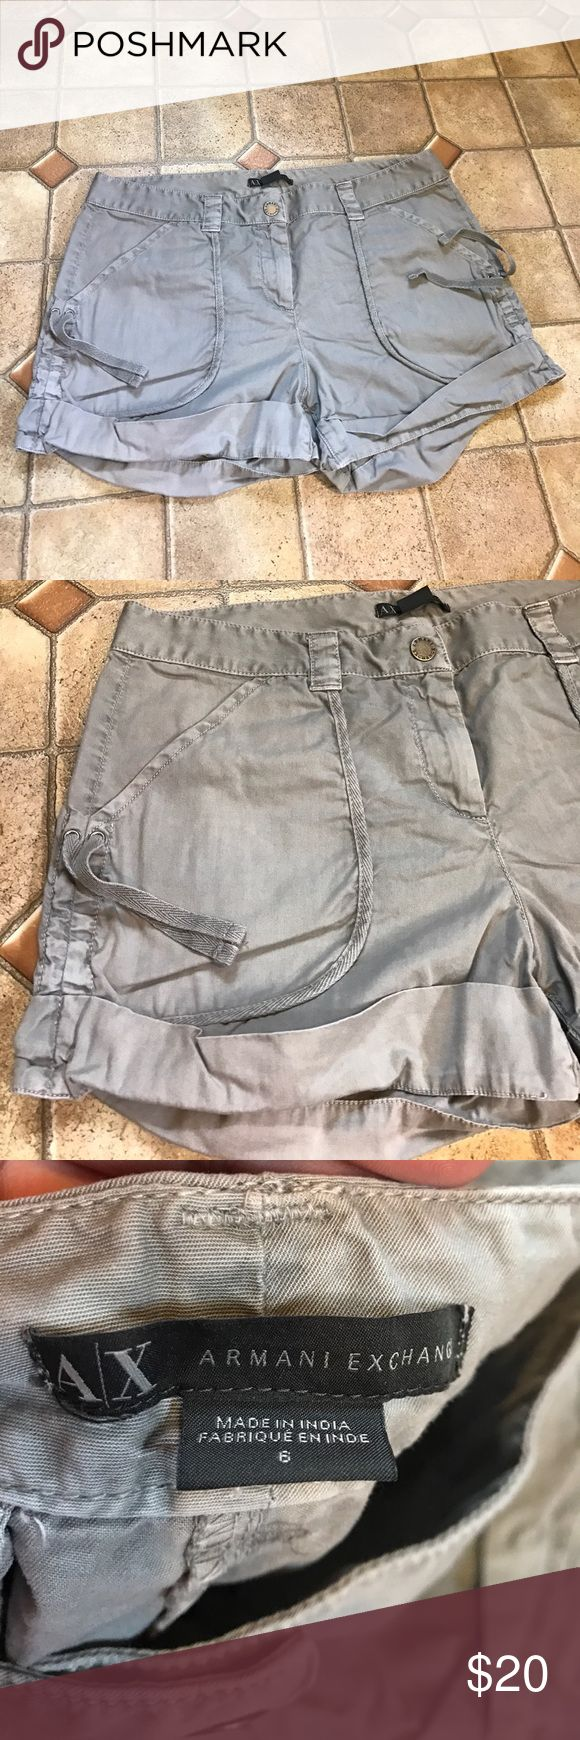 "Women's Armani exchange gray cargo shorts size 6 Women's Armani exchange gray cargo shorts size 6. Excellent used condition no tips/stains/holes etc. Waist is 16"" across, length is 3.5"" long A/X Armani Exchange Shorts"